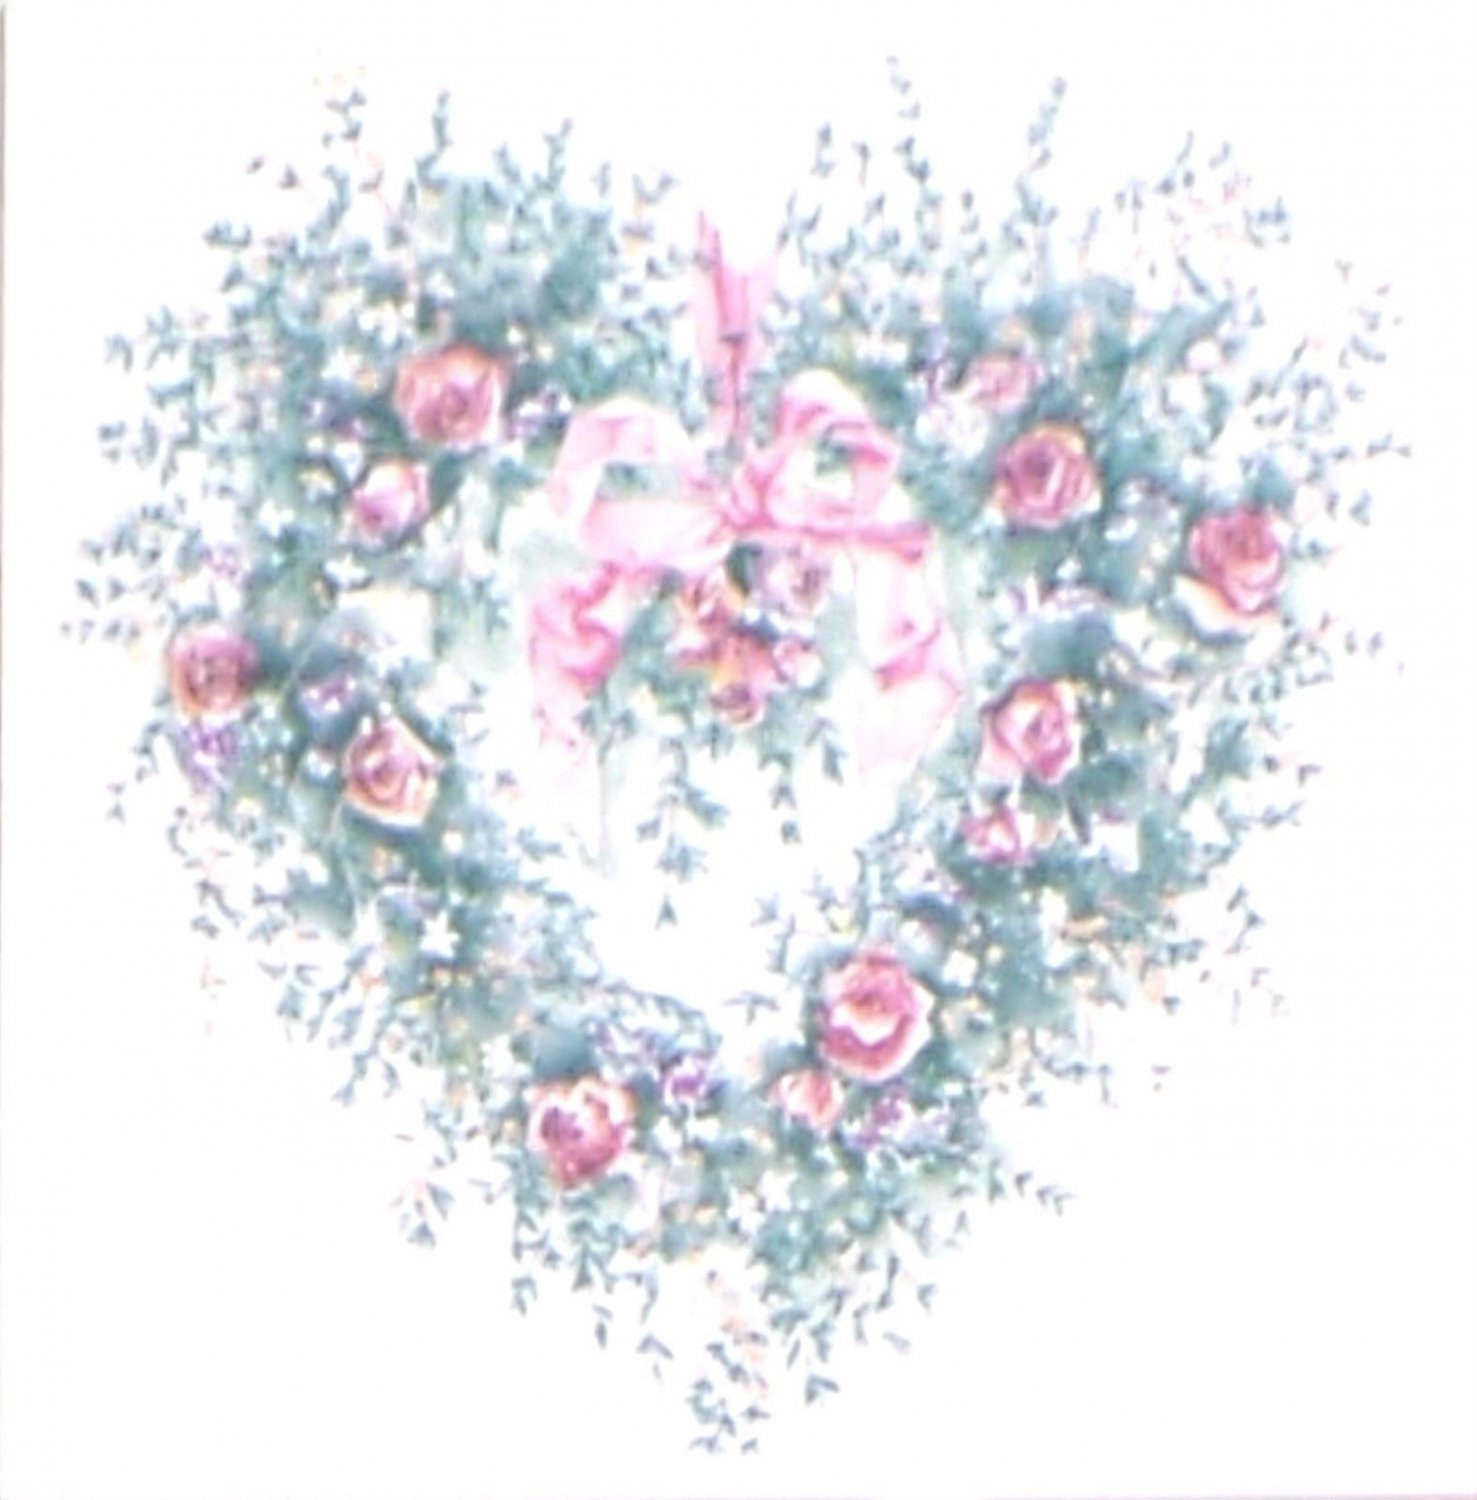 "Closeout Heart Pink Rose Ceramic Tile Mural Accent 4.25"" x 4.25"" Kiln Fired Back Splash"